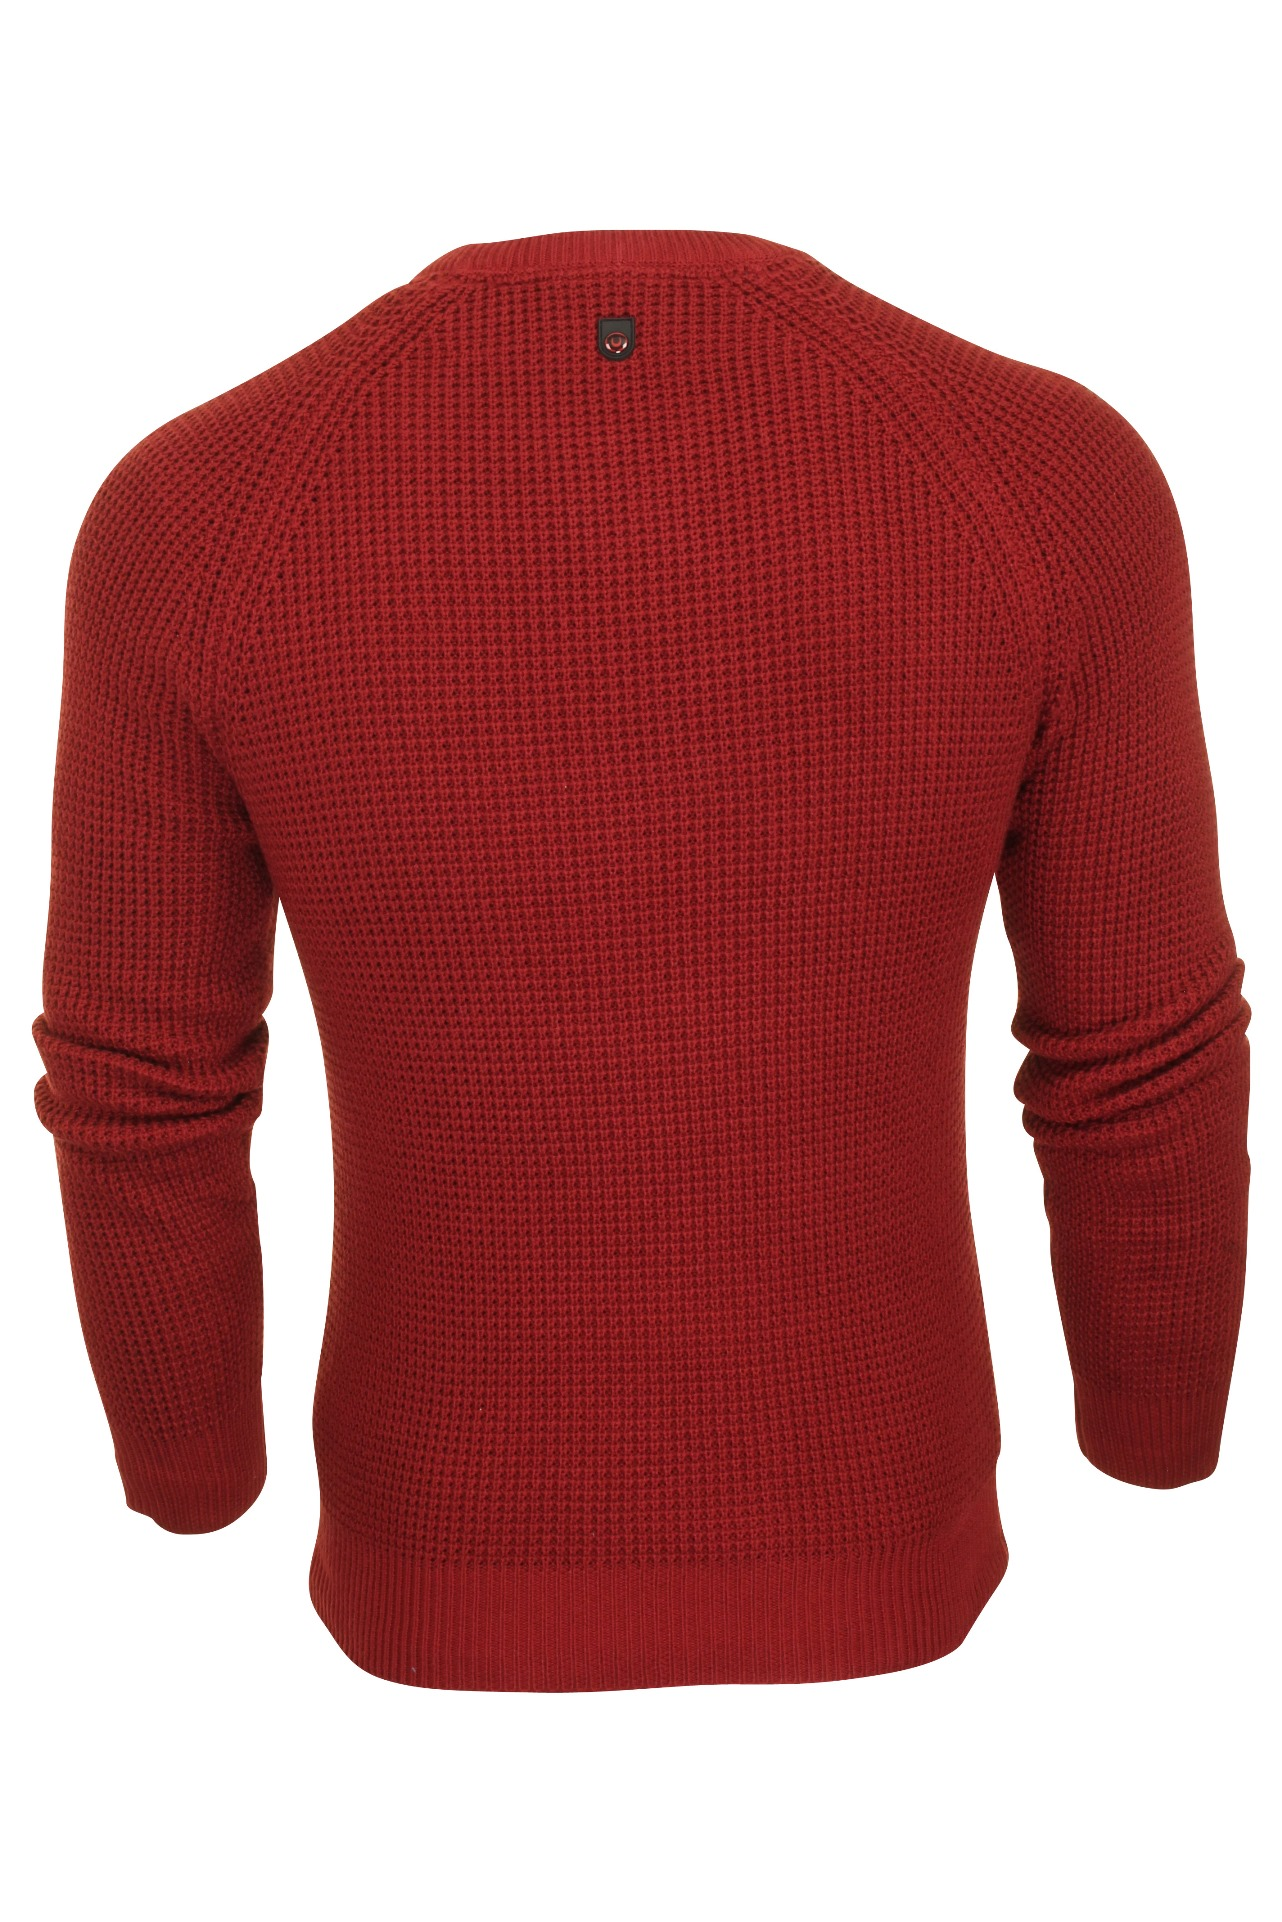 Duck-and-Cover-Mens-039-Generals-039-Crew-Neck-Jumper thumbnail 14